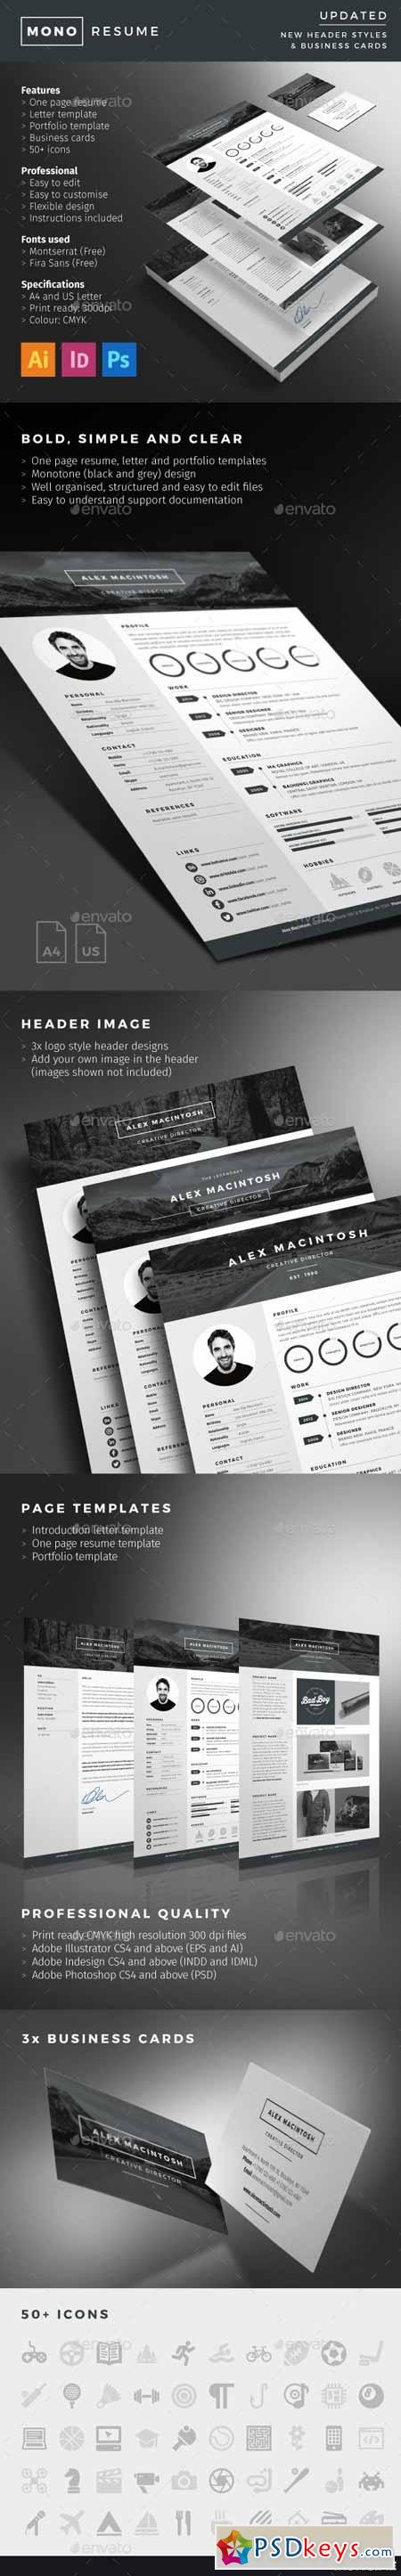 mono resume 10034652  u00bb free download photoshop vector stock image via torrent zippyshare from